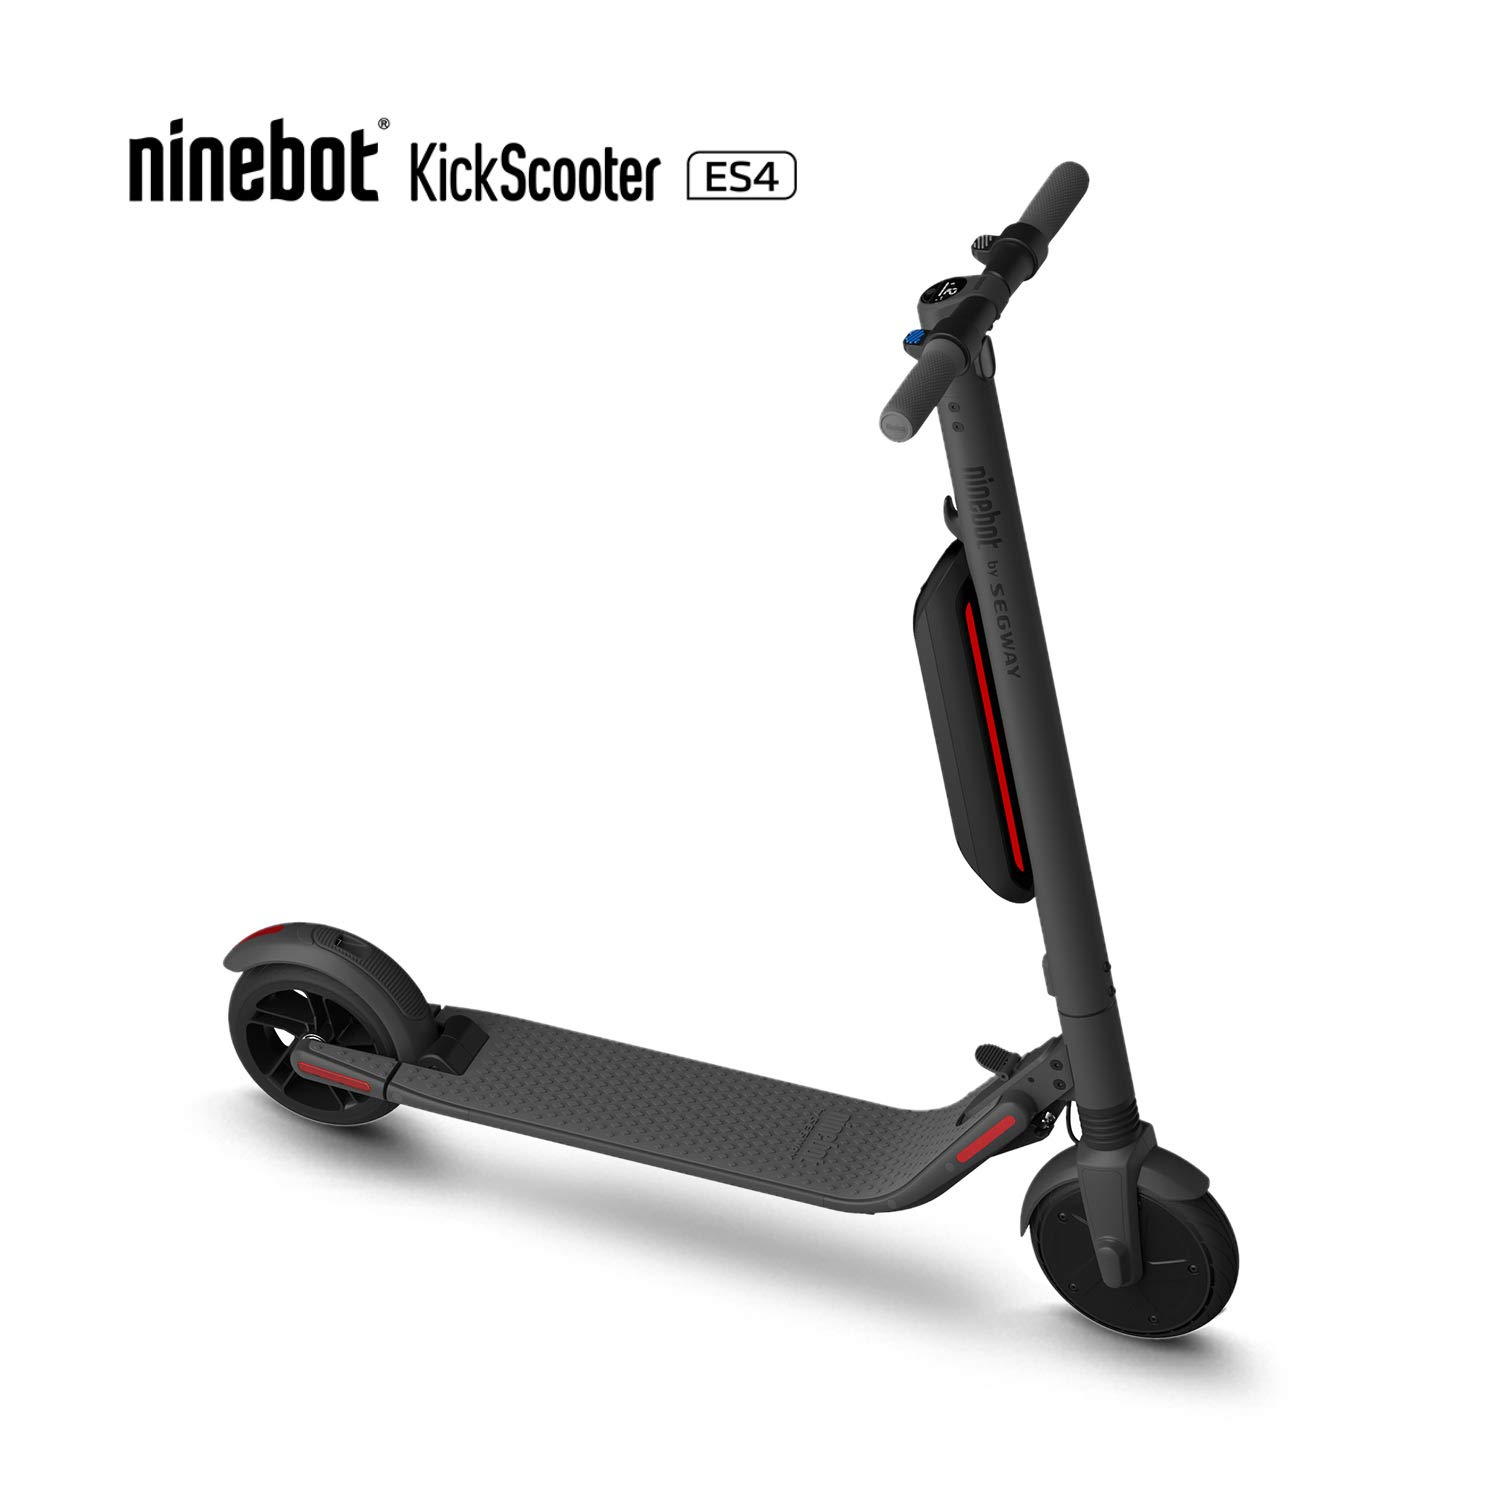 Segway Ninebot ES4 Folding Electric Kick Scooter with Second Battery, Dark Grey (2019 Version) by SEGWAY